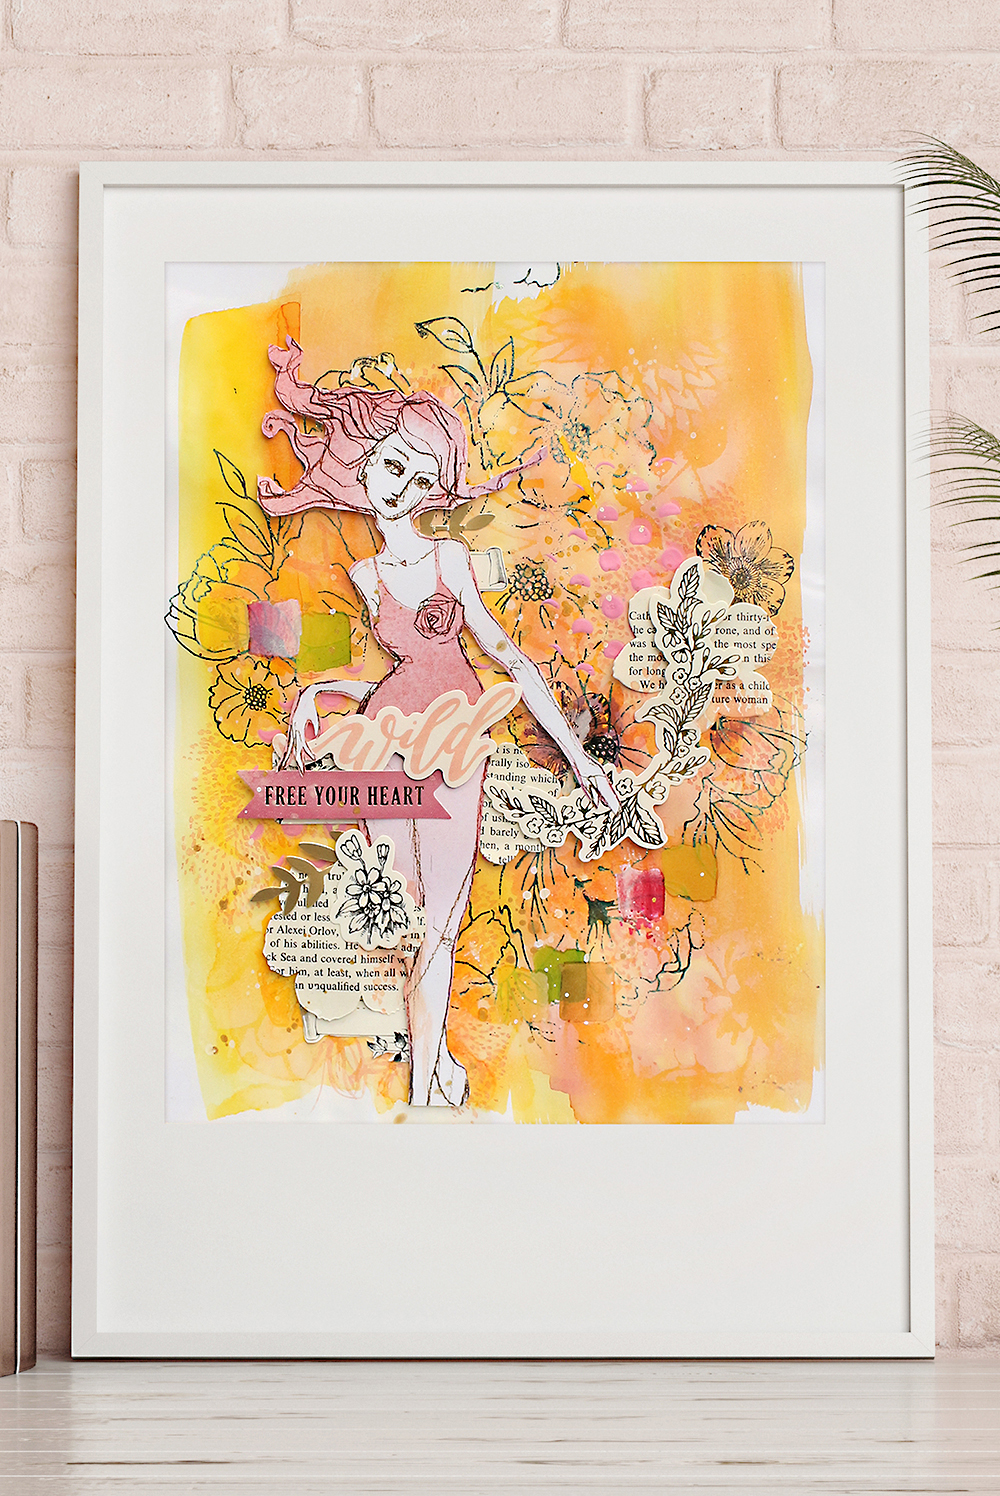 Mixed Media Framed Art by Chantalle McDaniel for We R Memory Keepers